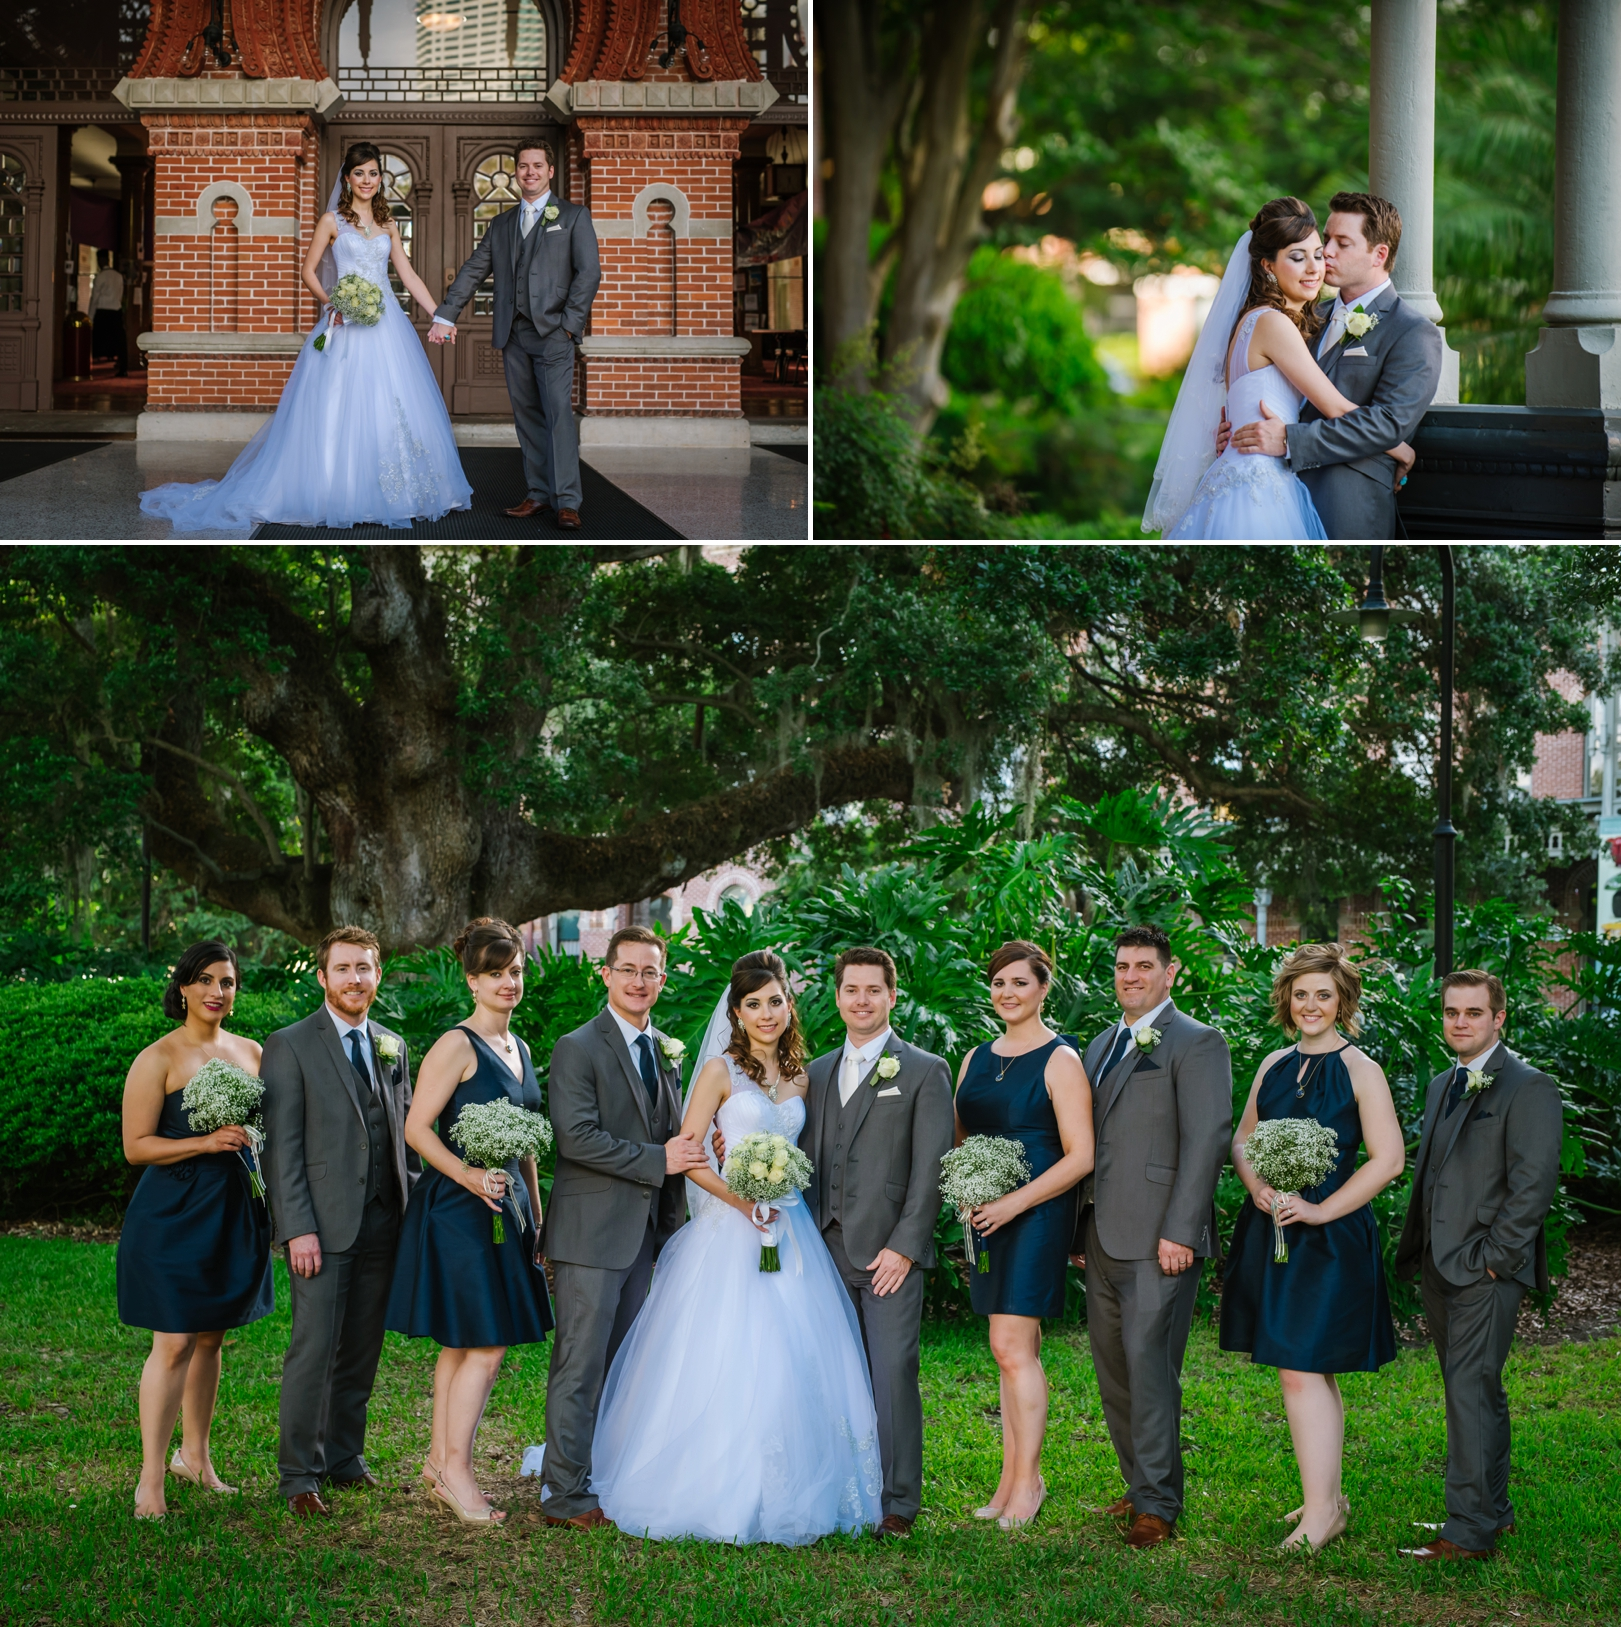 tampa-wedding-photography-traditional-cathedral-wedding_0010.jpg